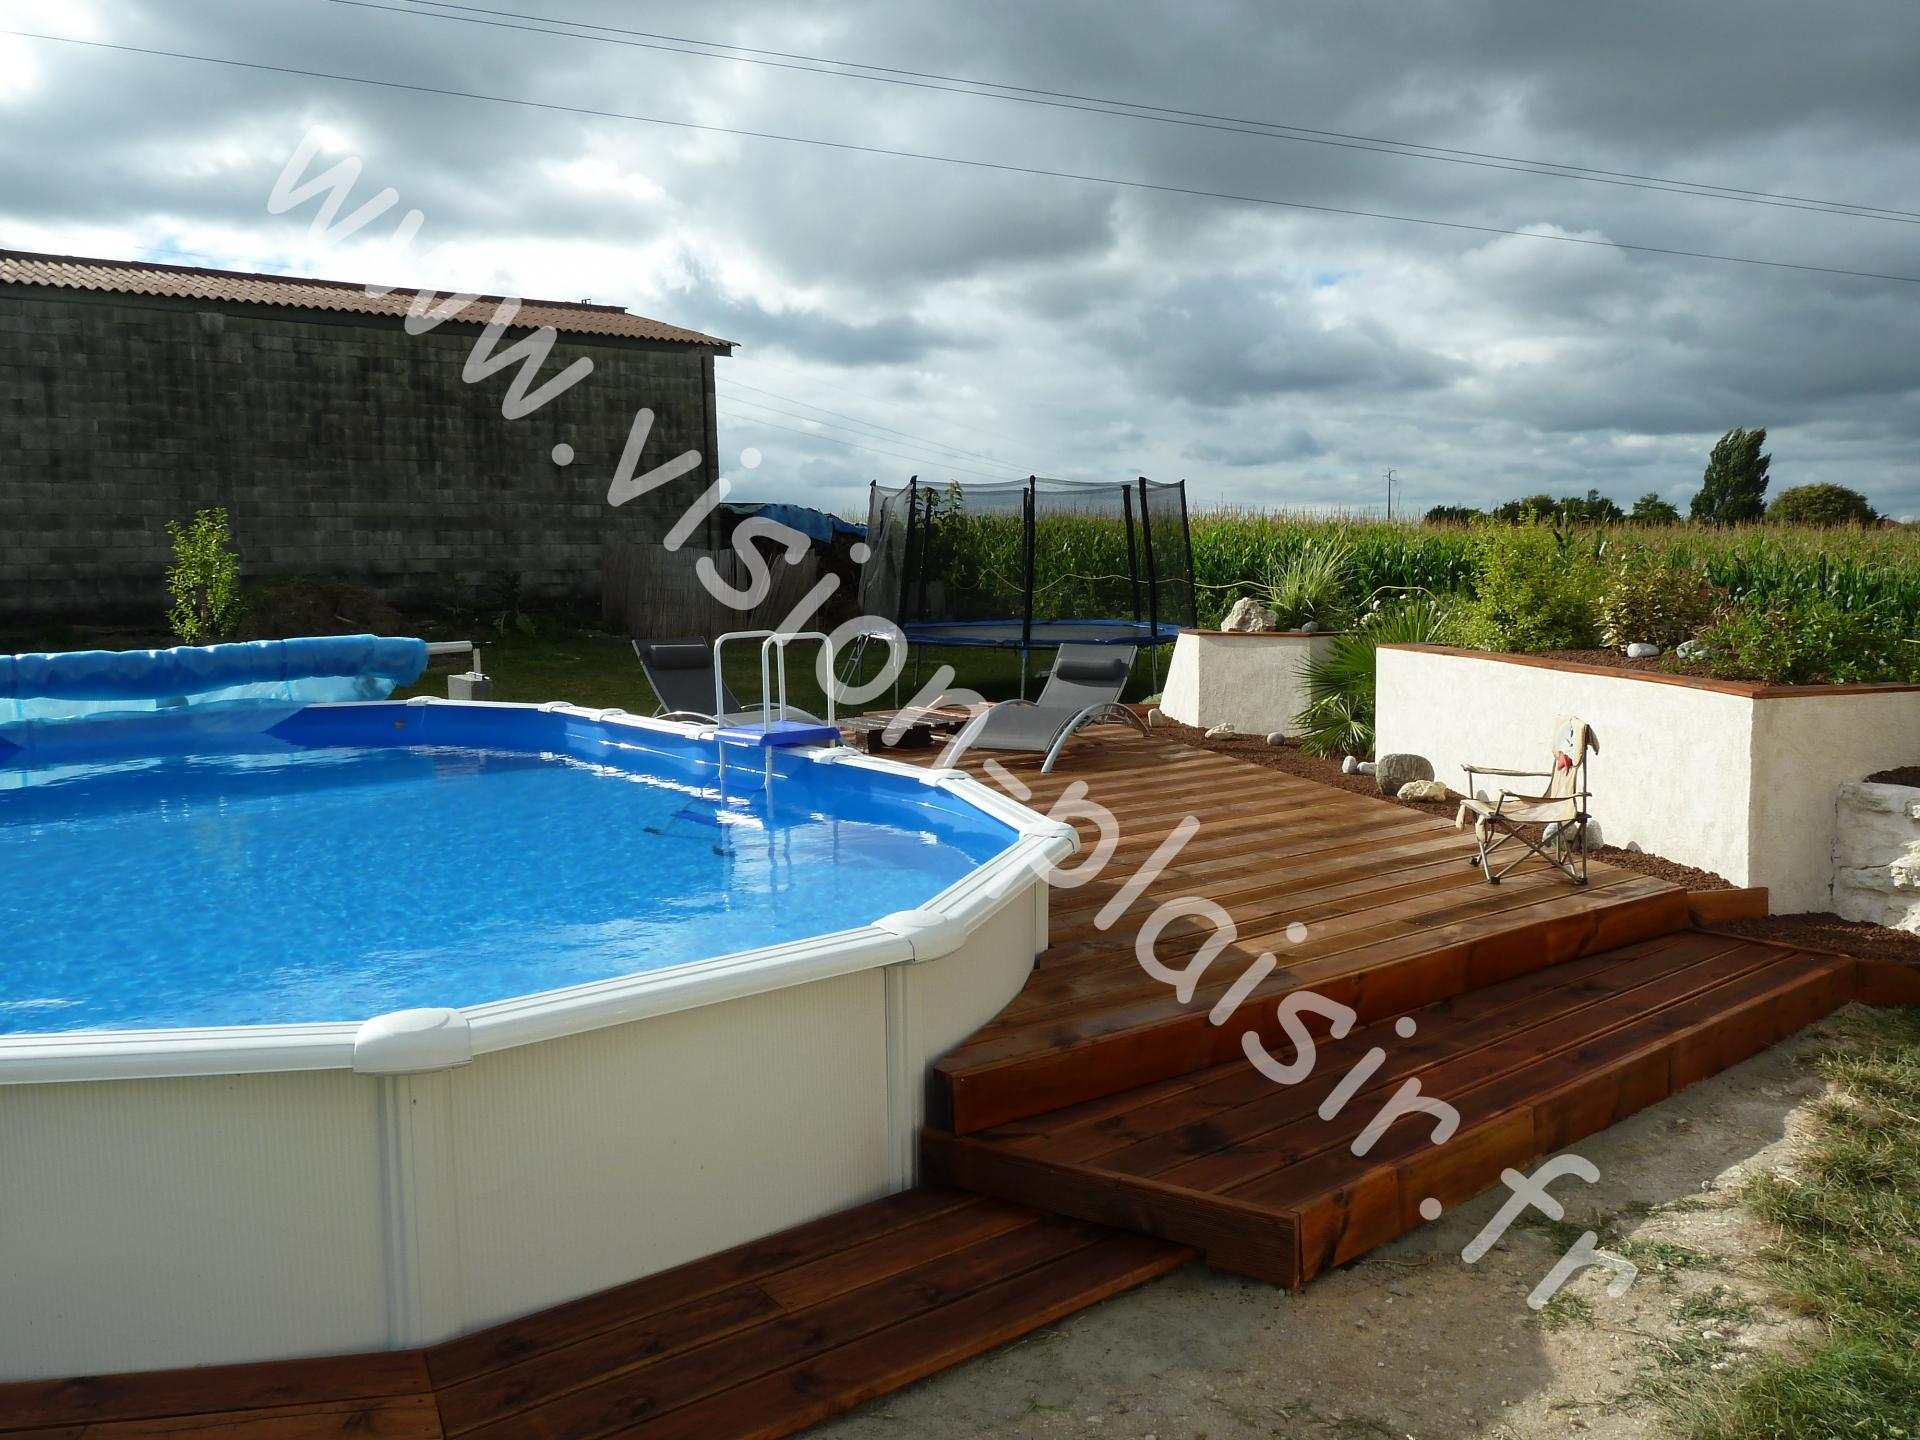 Terrasse bois piscine semi enterree for Piscine en bois semi enterree prix